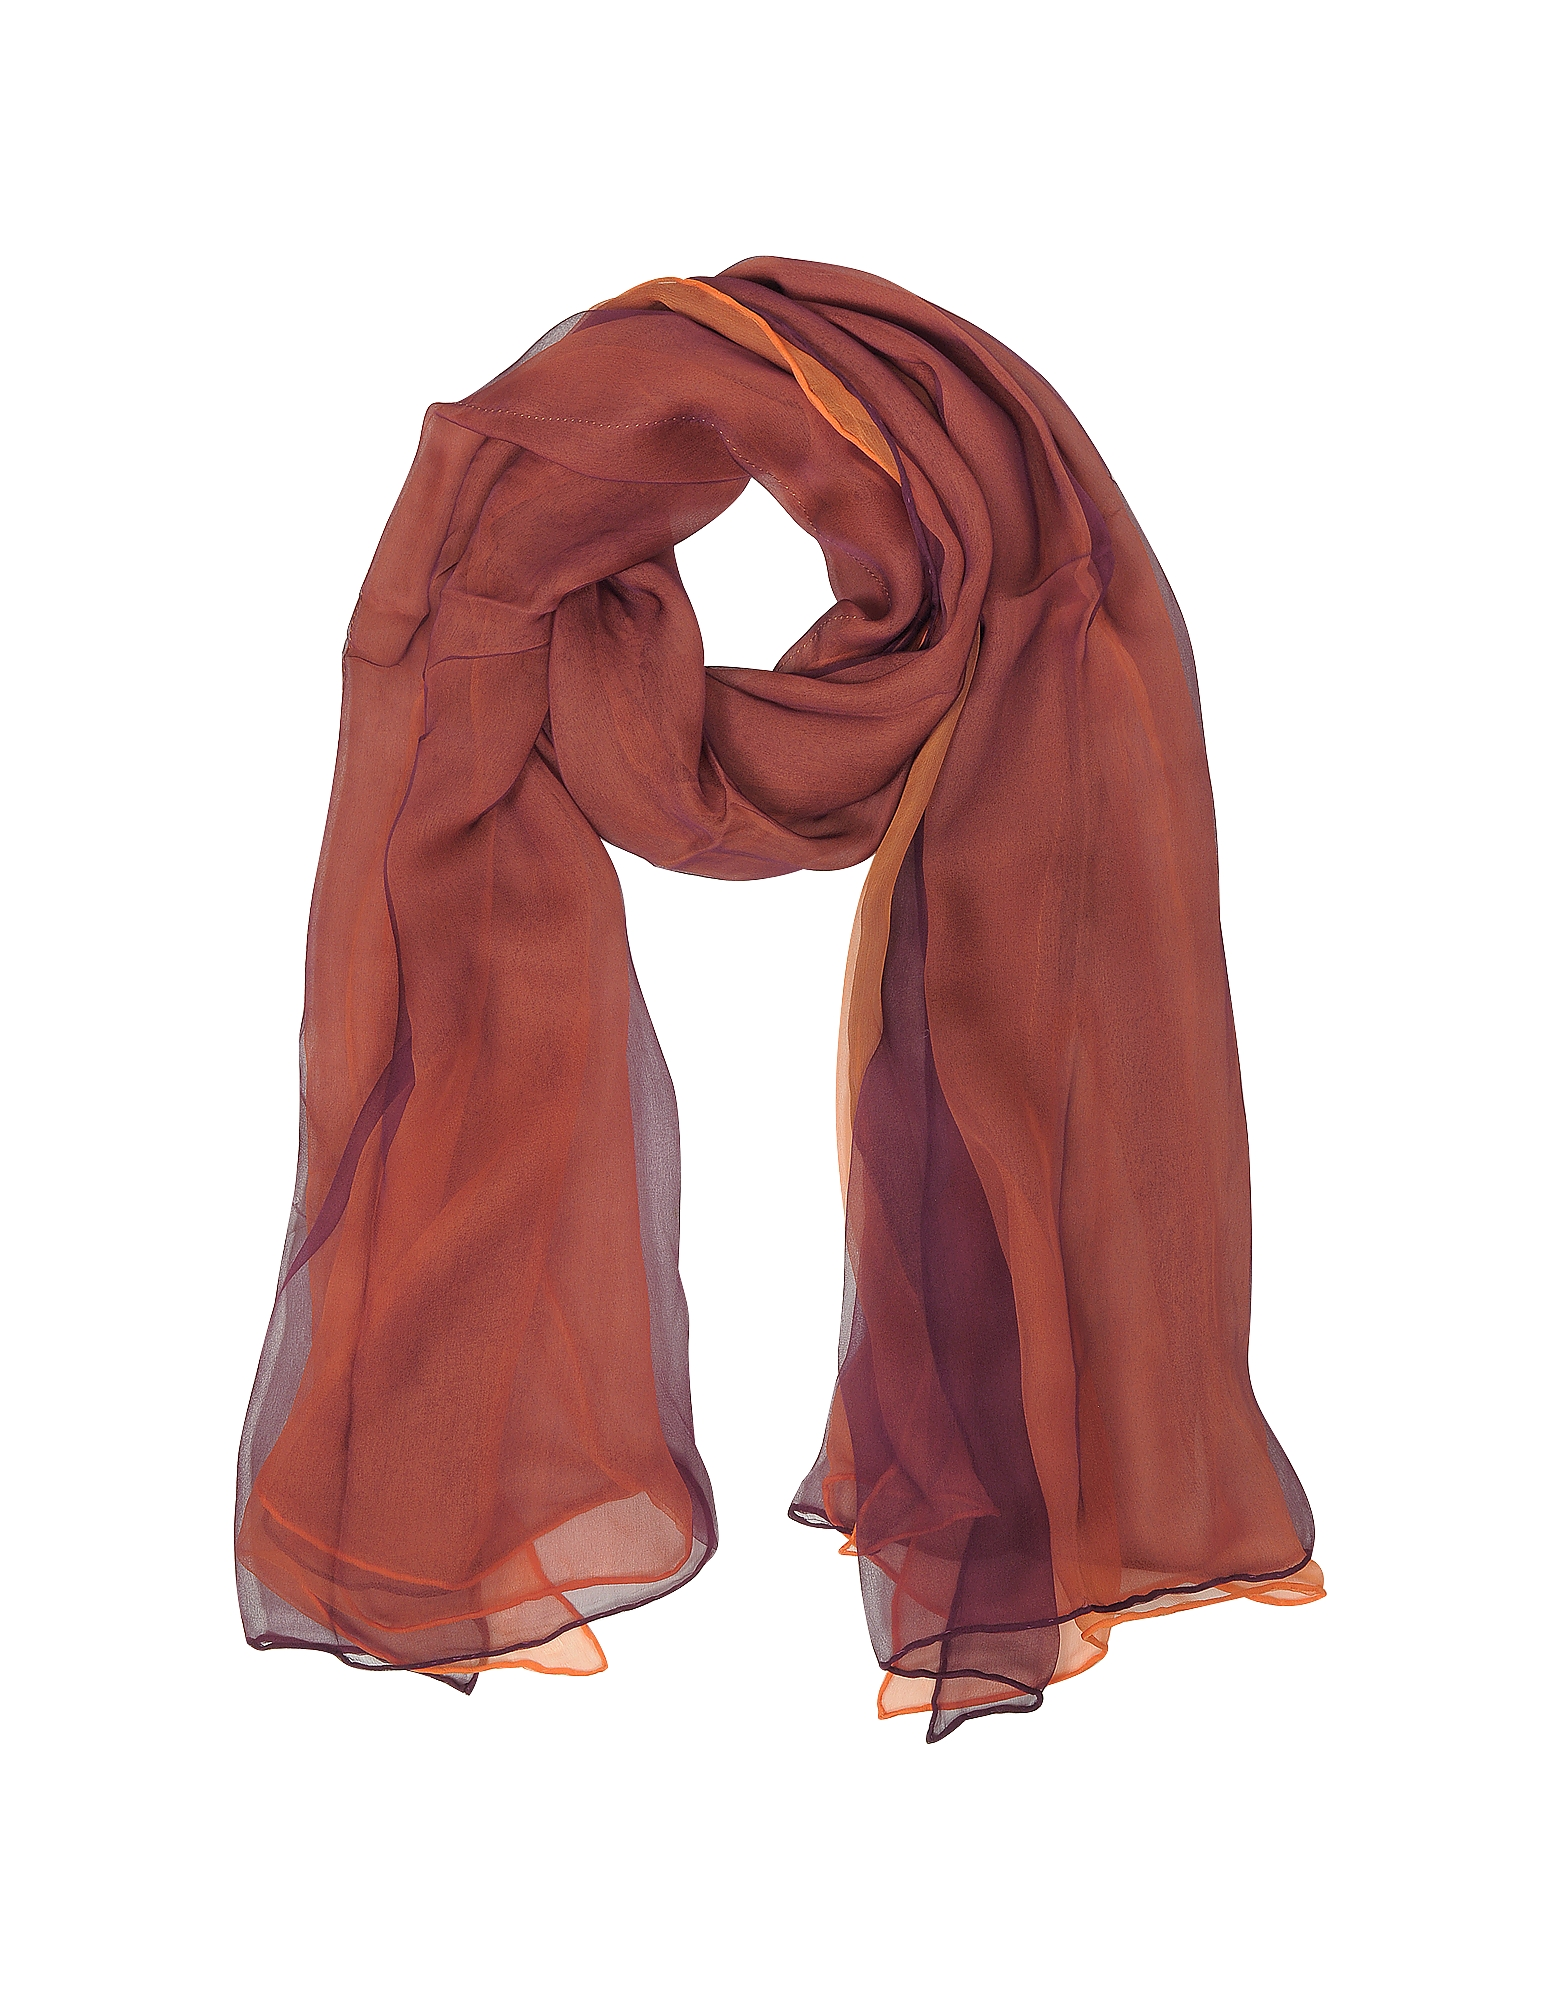 Image of Laura Biagiotti Designer Scarves, Burgundy and Orange Double Chiffon Silk Stole